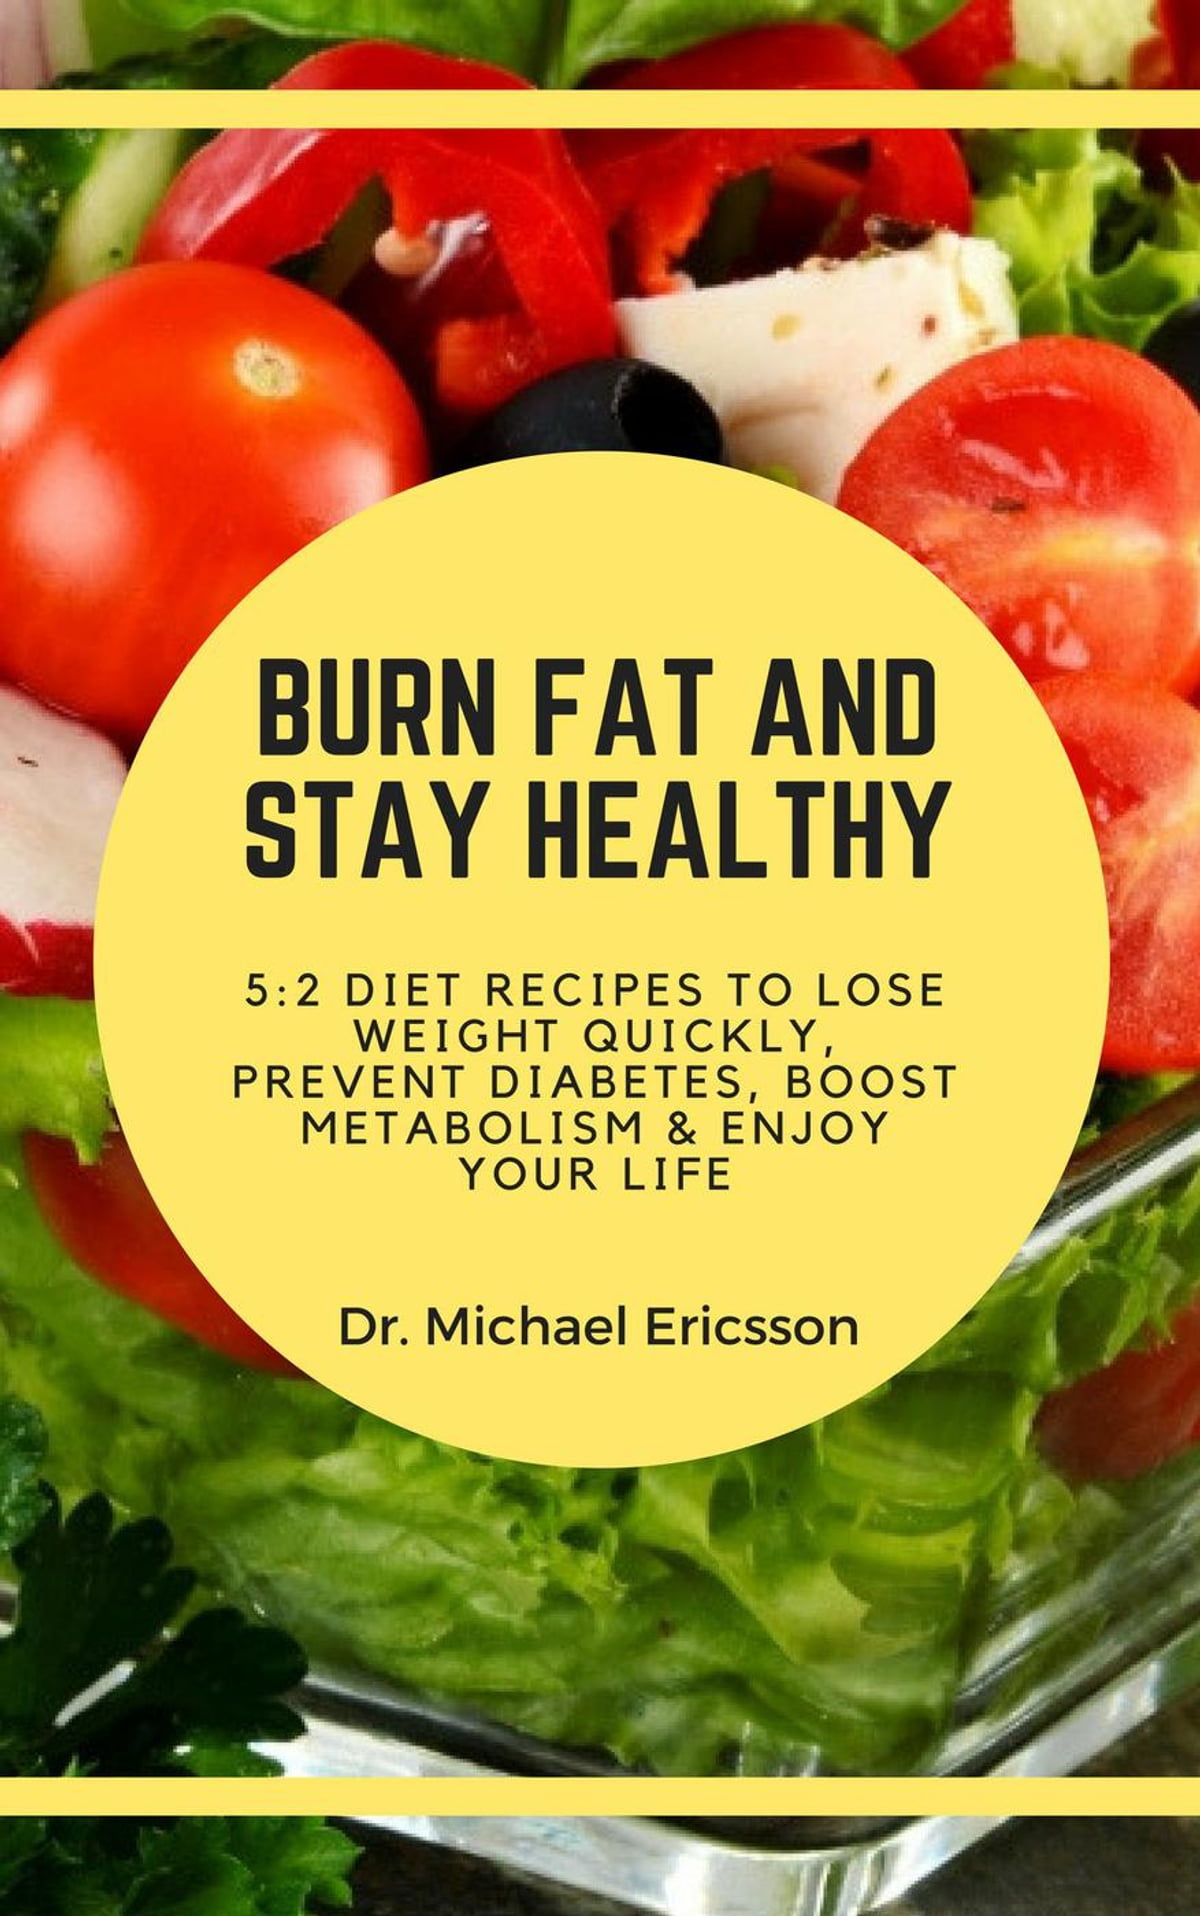 Burn Fat and Stay Healthy: 112:12 Diet Recipes to Lose Weight Quickly, Prevent  Diabetes, Boost Metabolism & Enjoy Your Life ebook by Dr. Michael Ericsson